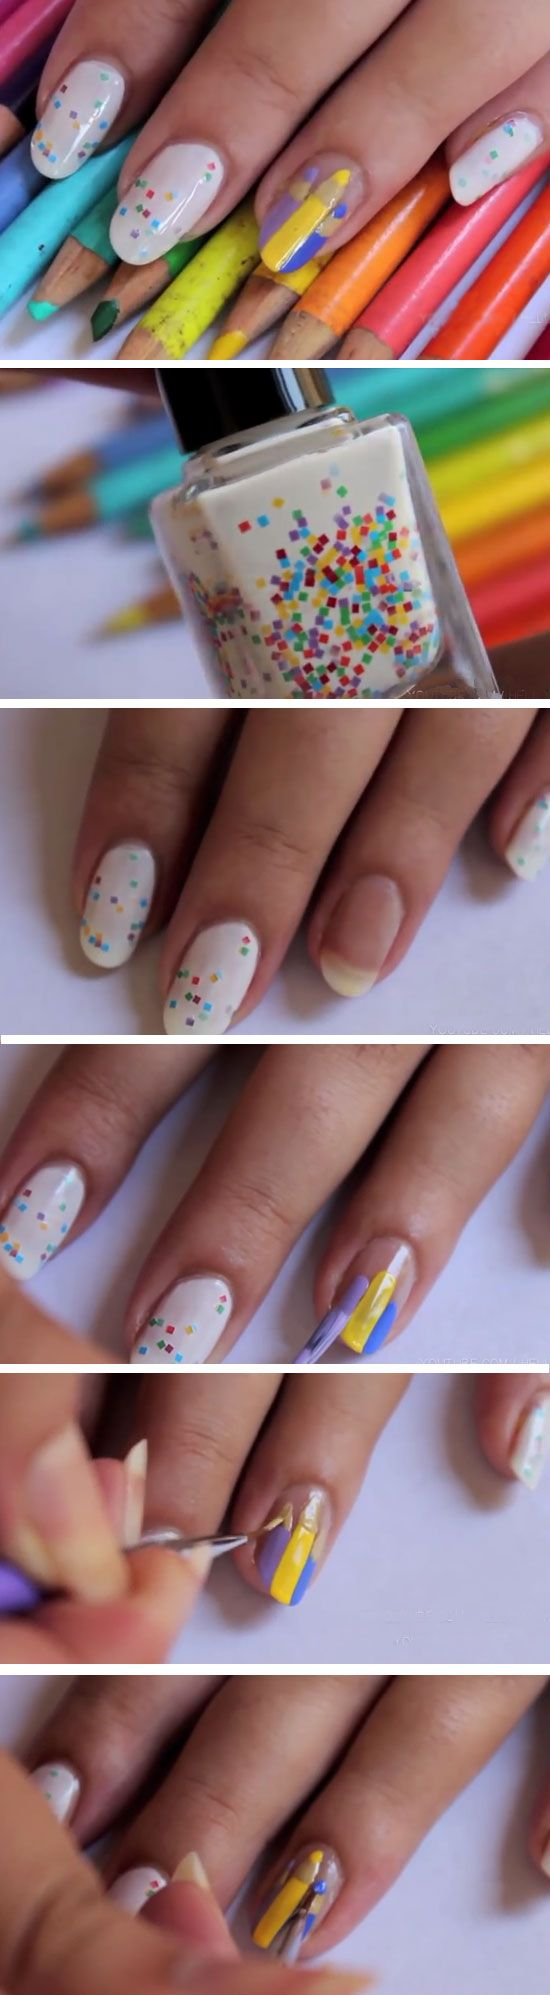 The 21 best Nail Design images on Pinterest | Nail art ideas, Nail ...